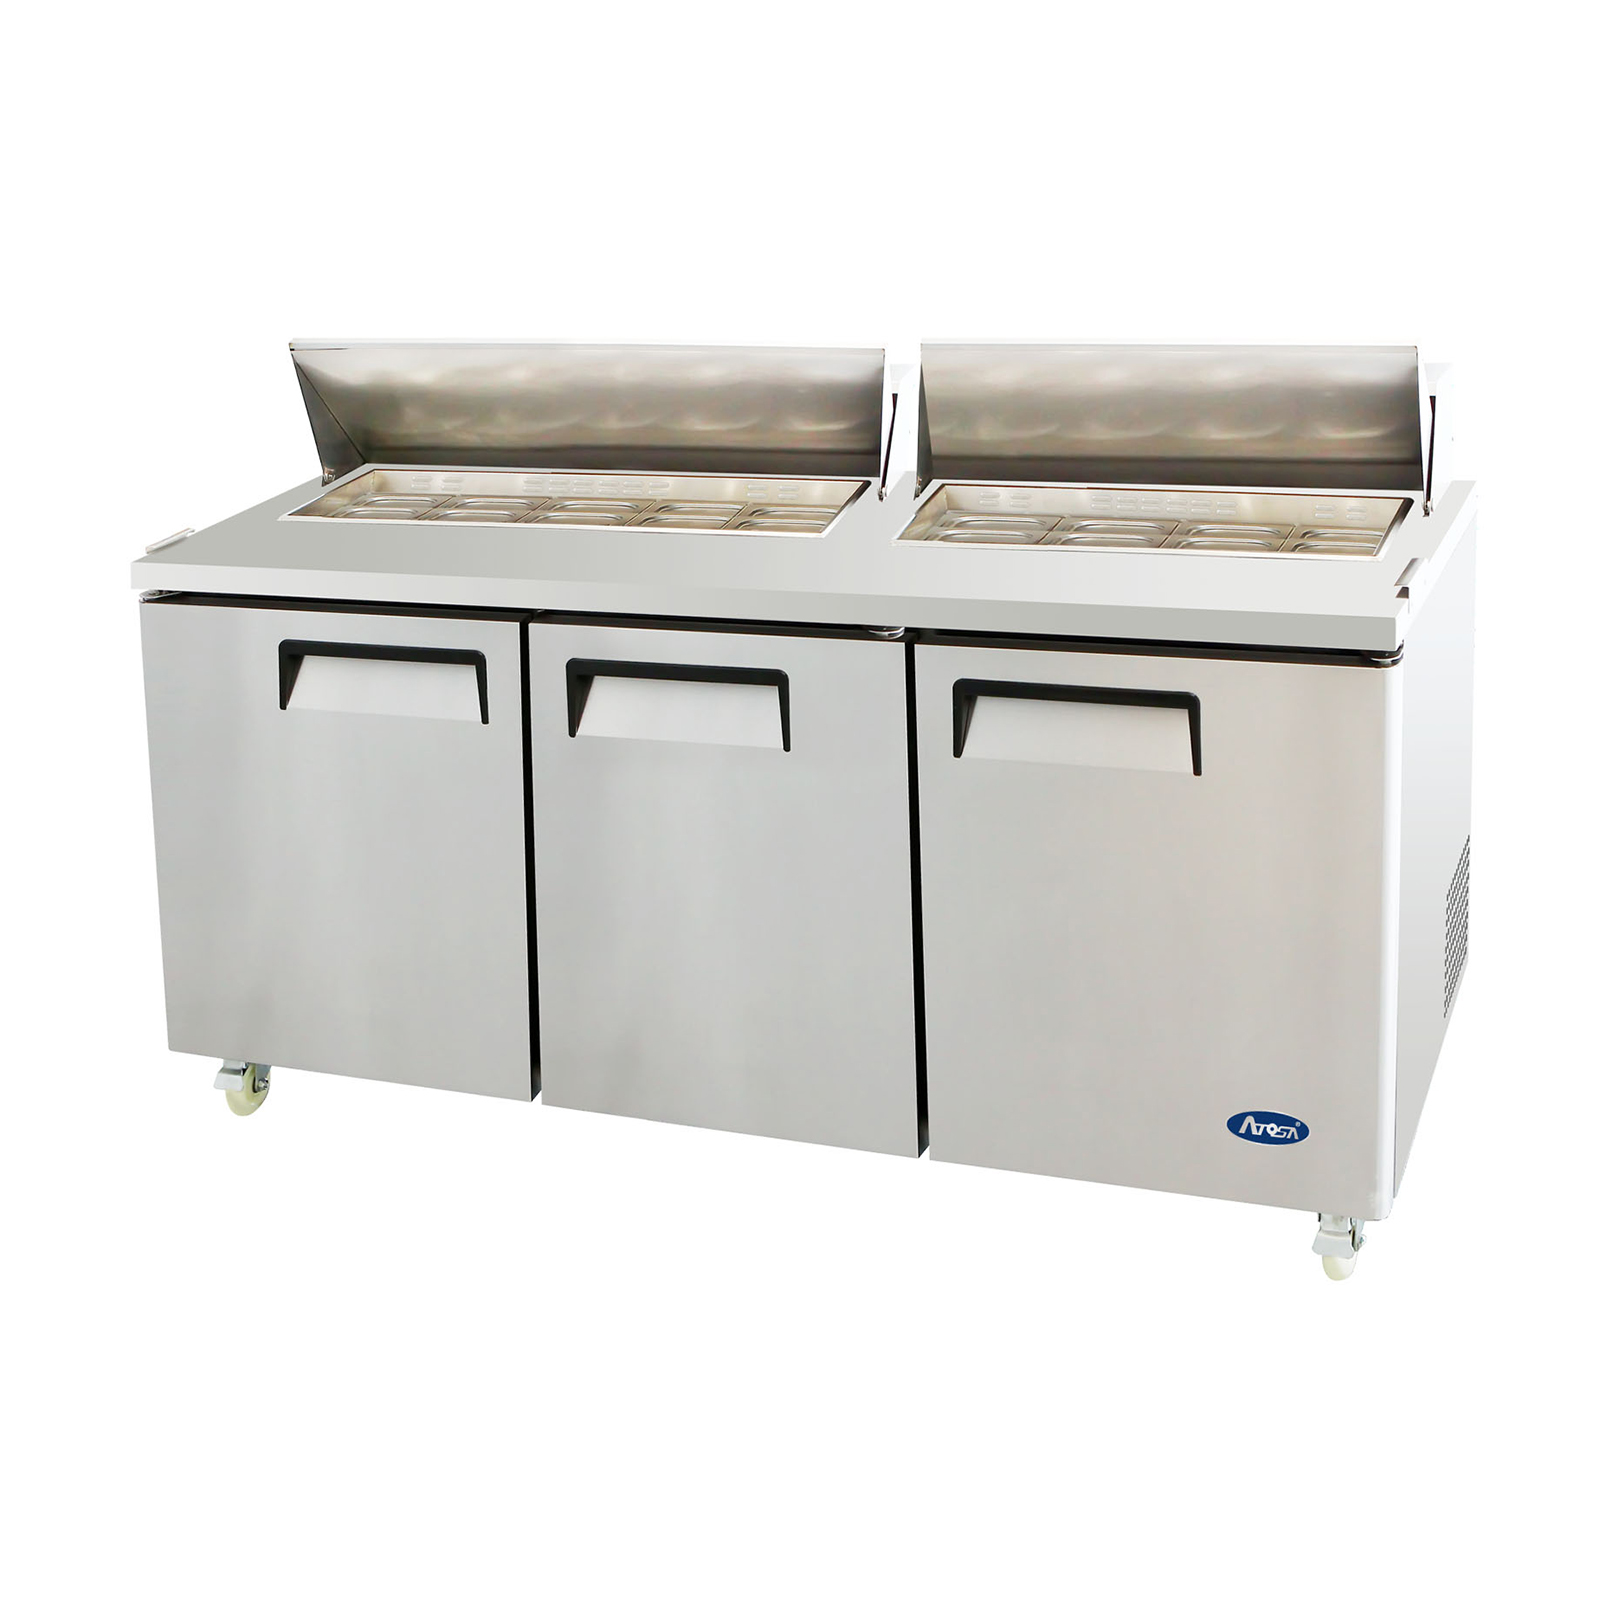 Atosa USA MSF8304GR refrigerated counter, sandwich / salad unit